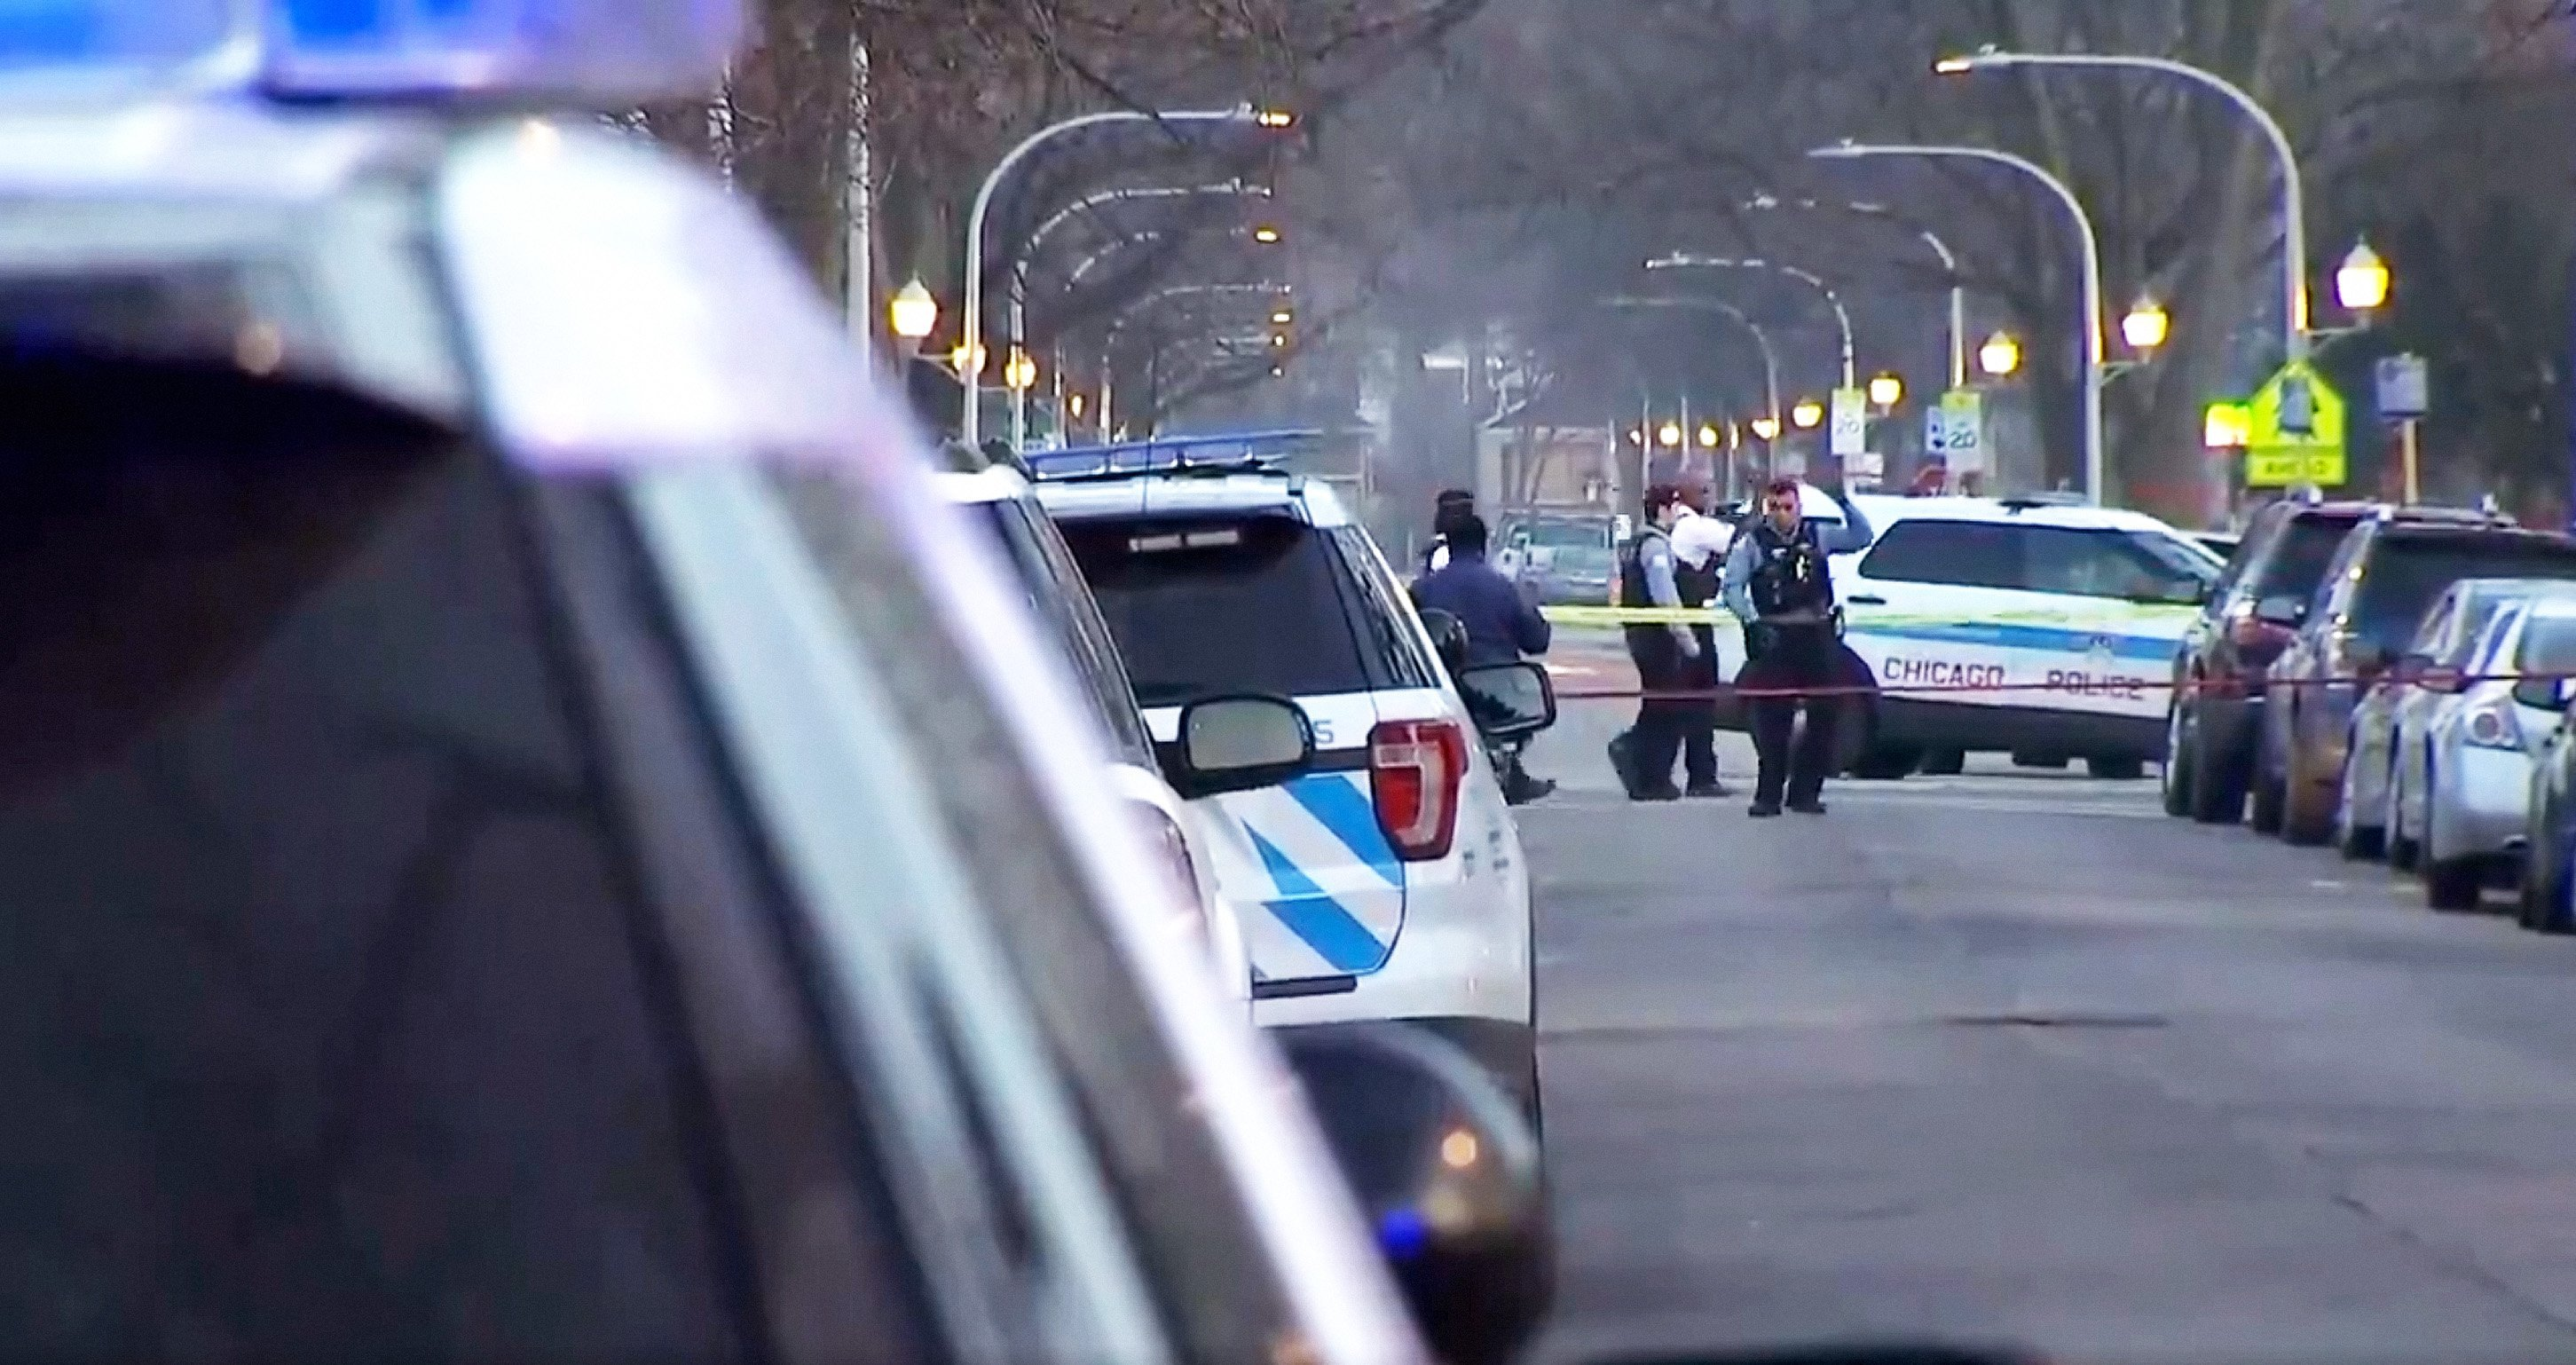 Heavy police presence at the scene of the crime | Photo: NBC Chicago